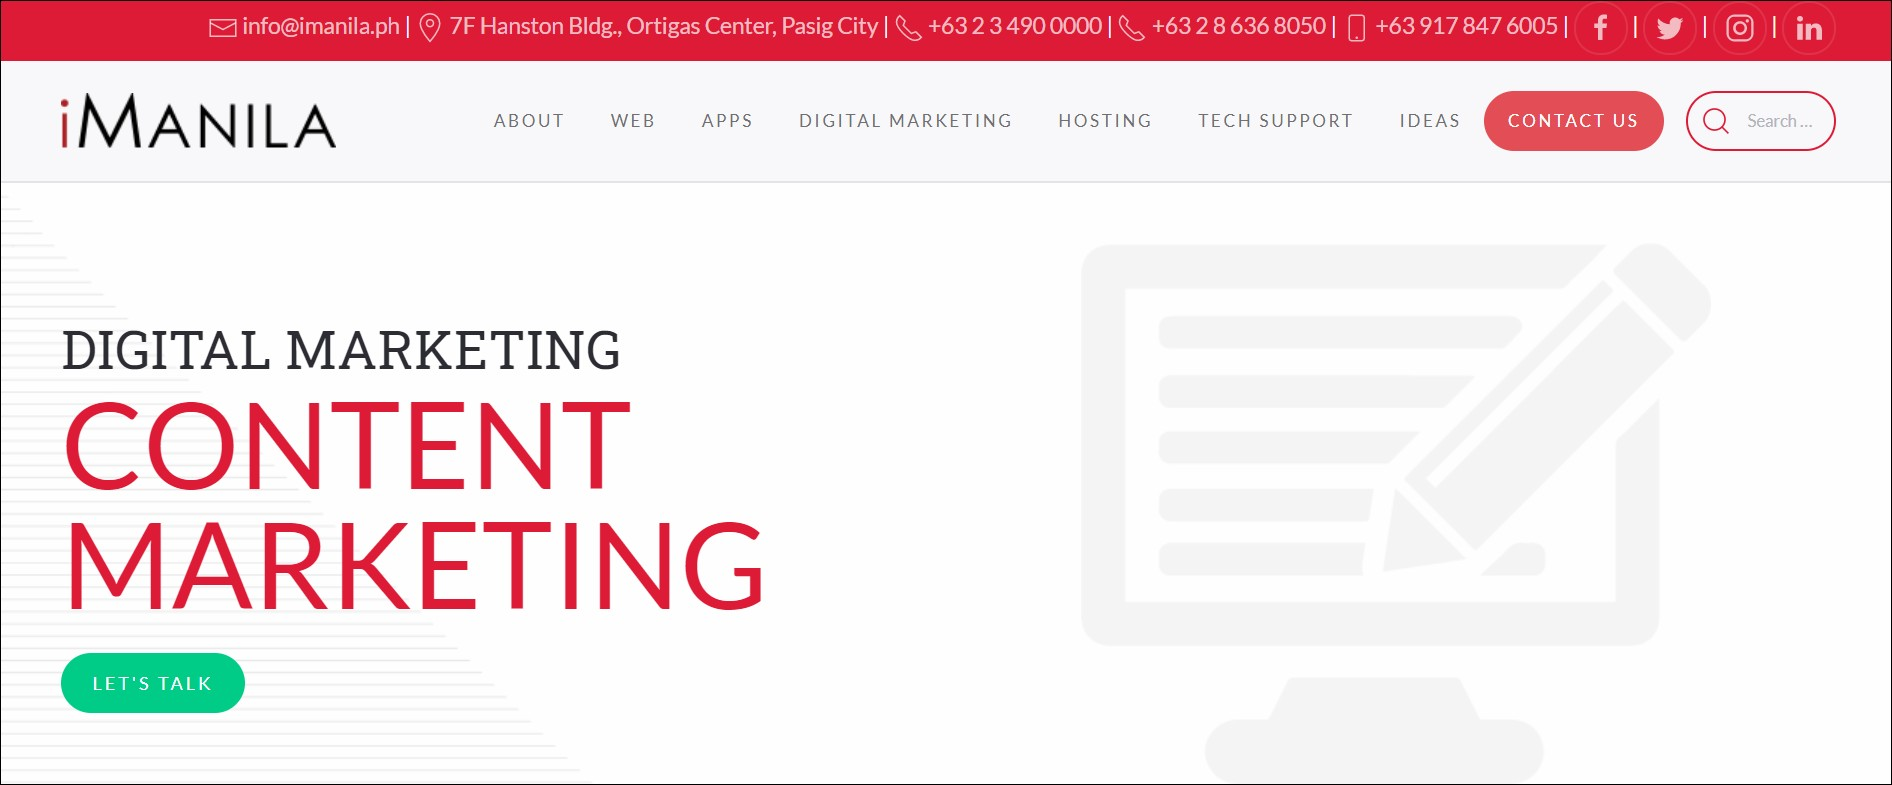 iManila: content marketing agencies in South East Asia